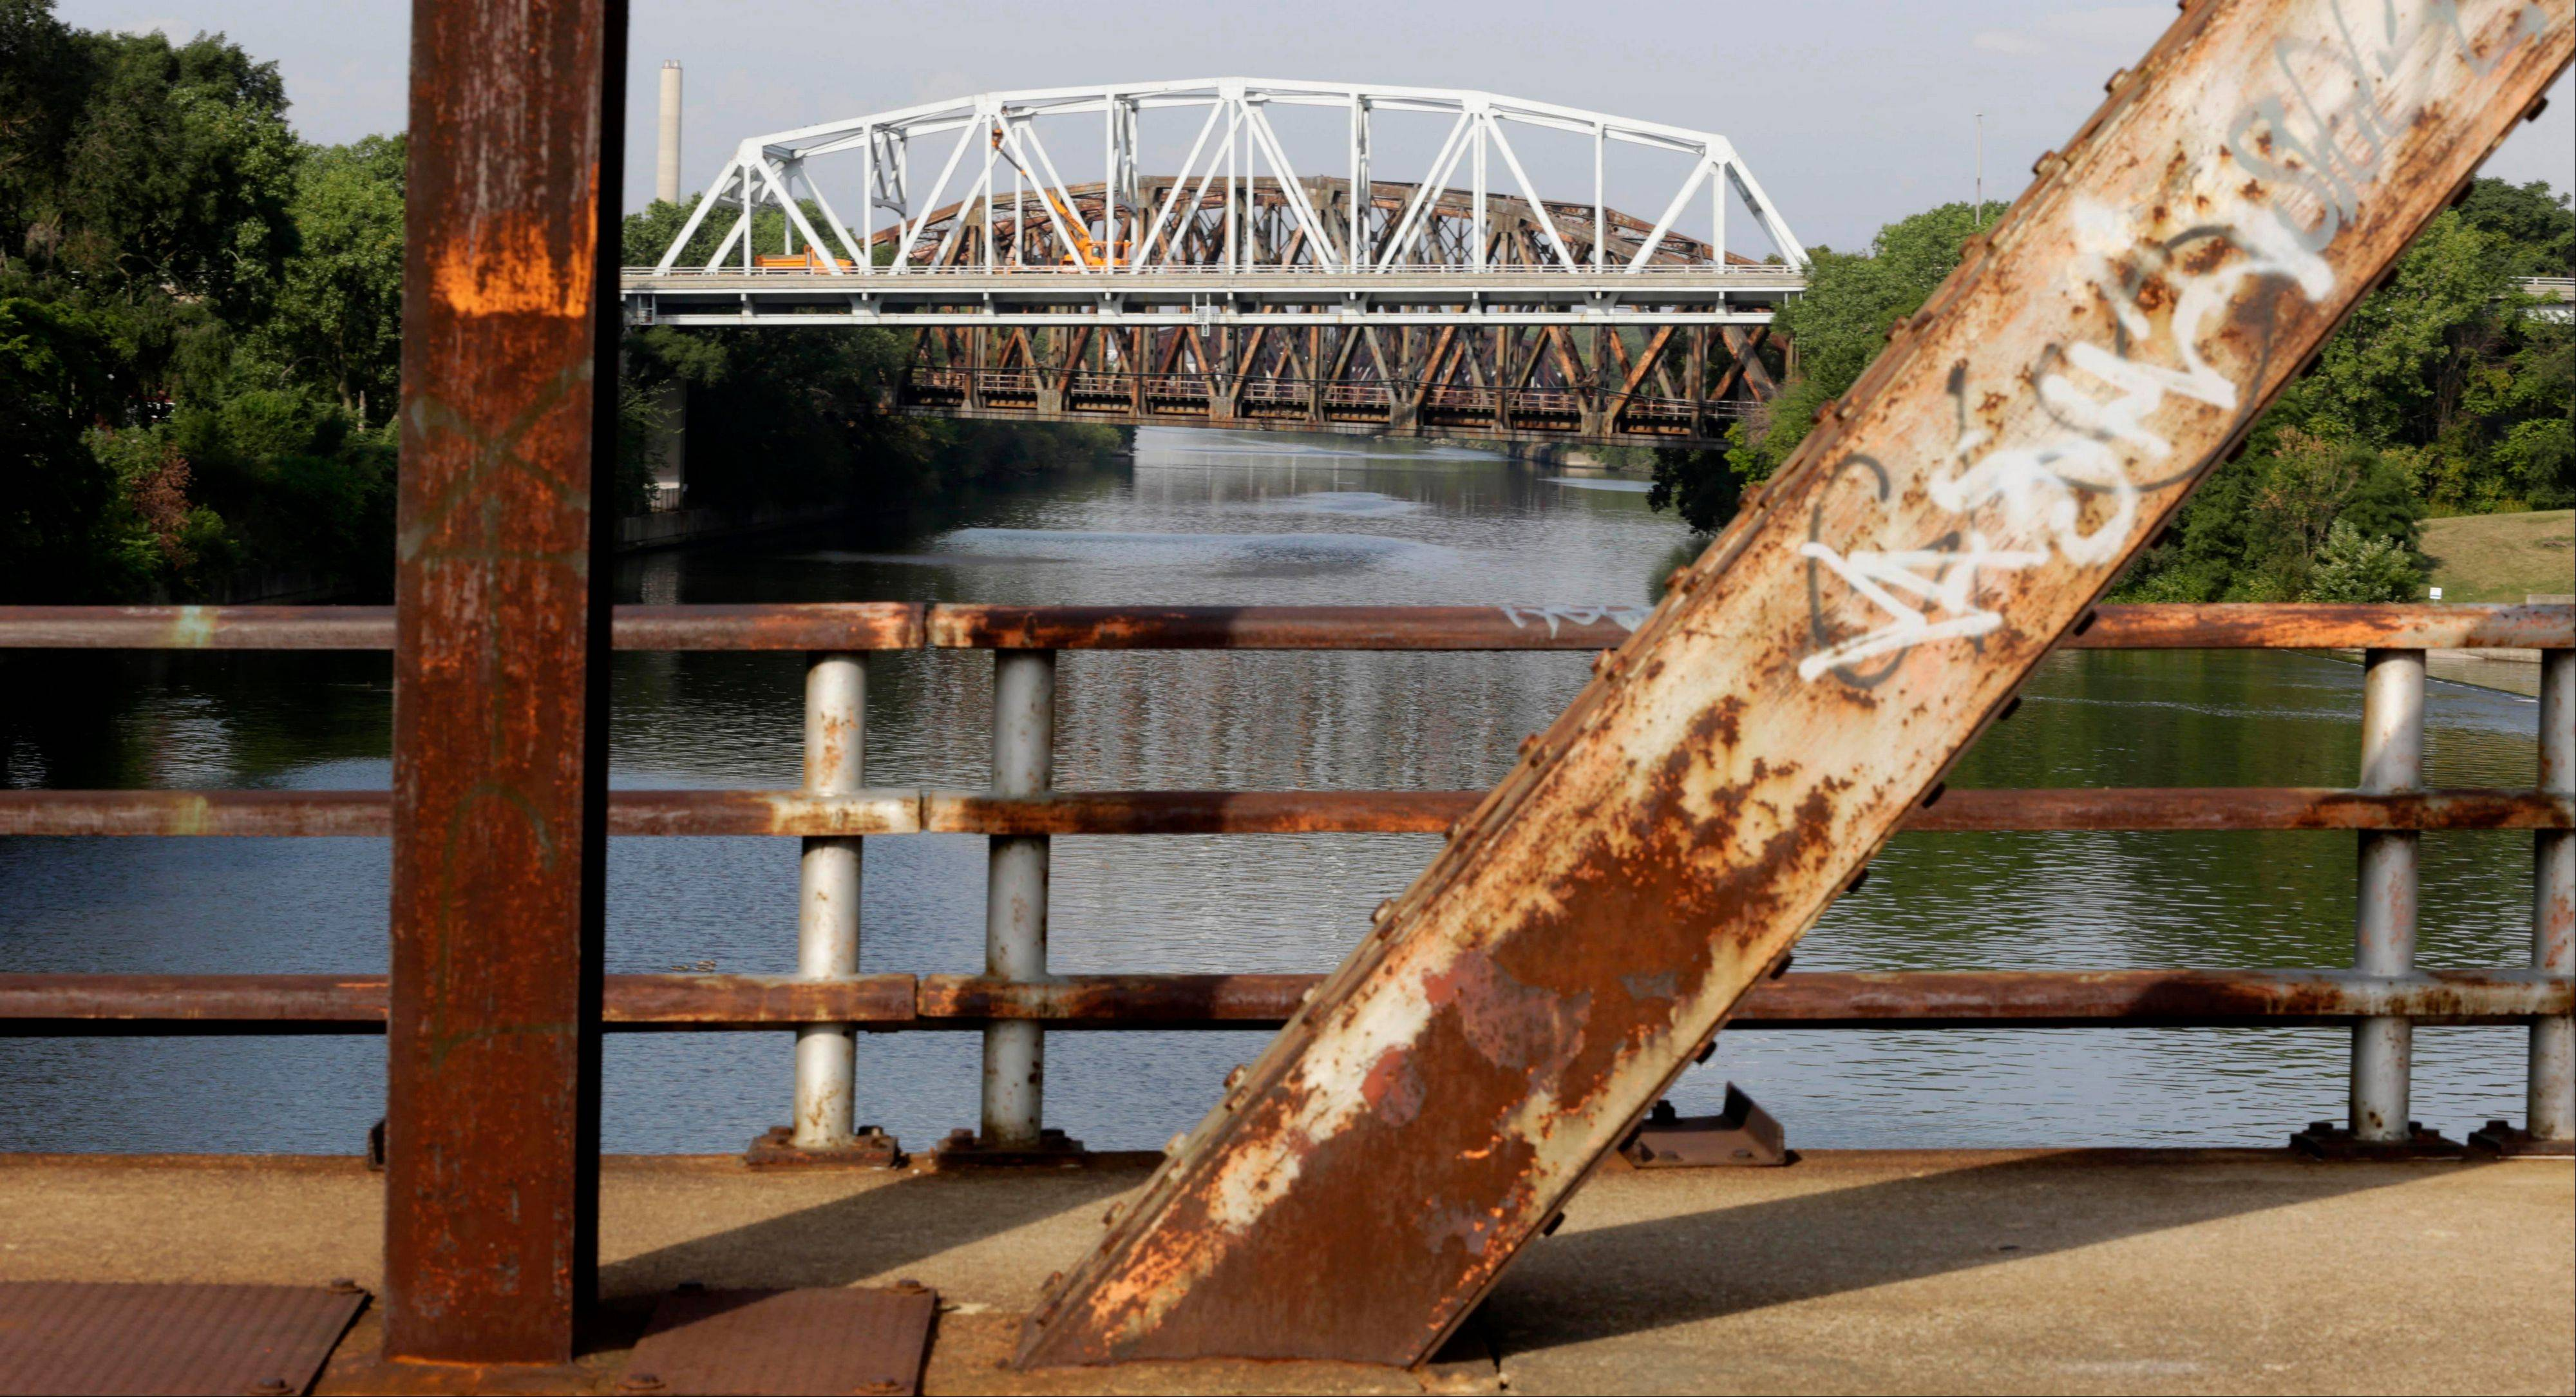 The Western Avenue bridge over the Cal-Sag Channel is framed by the rusted supports of the closed Chatham Street bridge in Blue Island